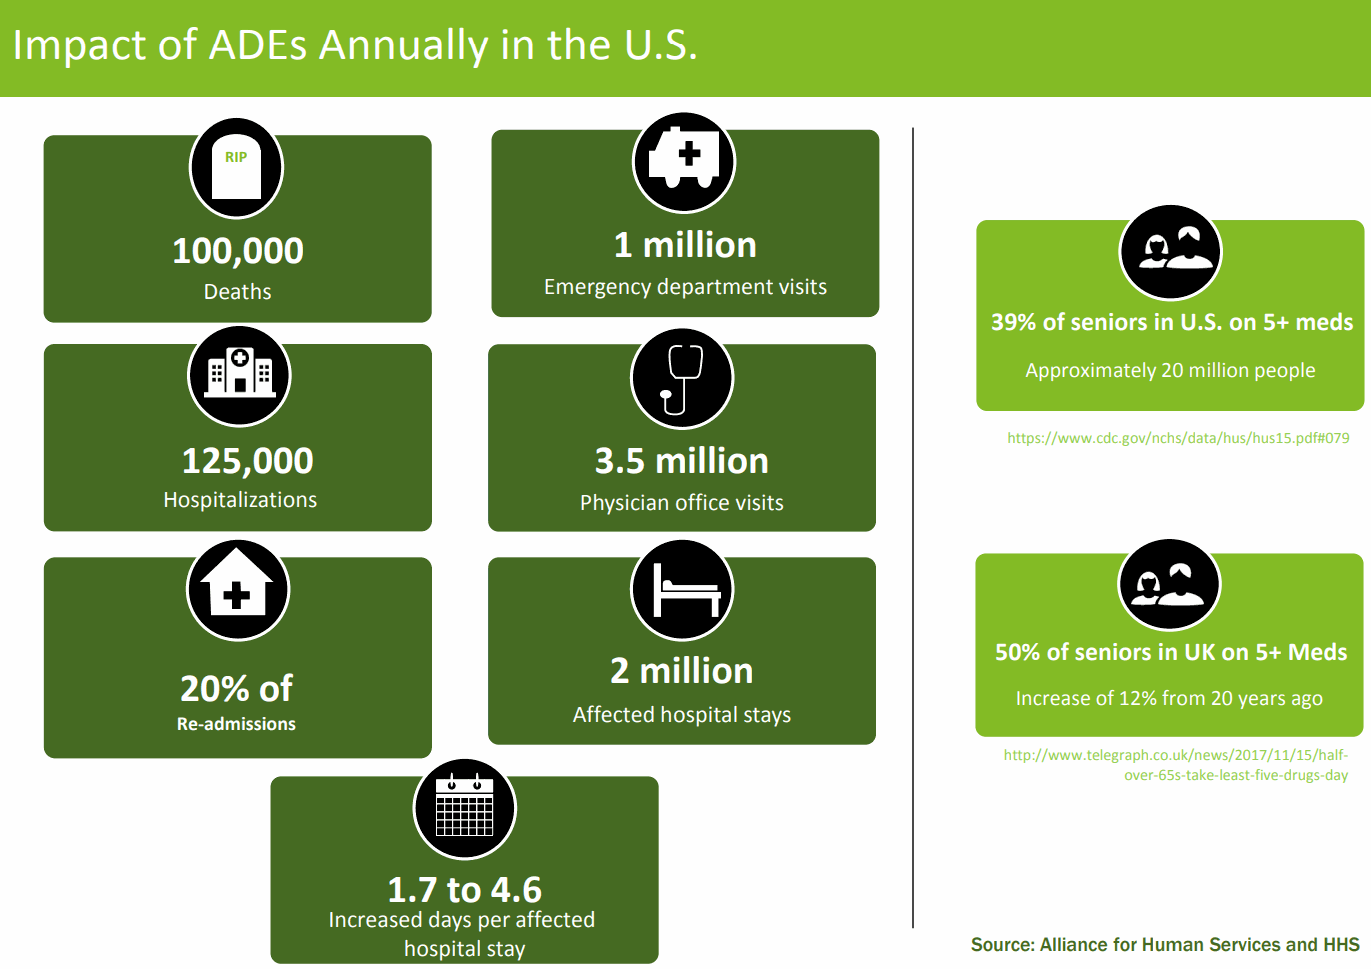 Impact of ADEs Annually in the U.S.